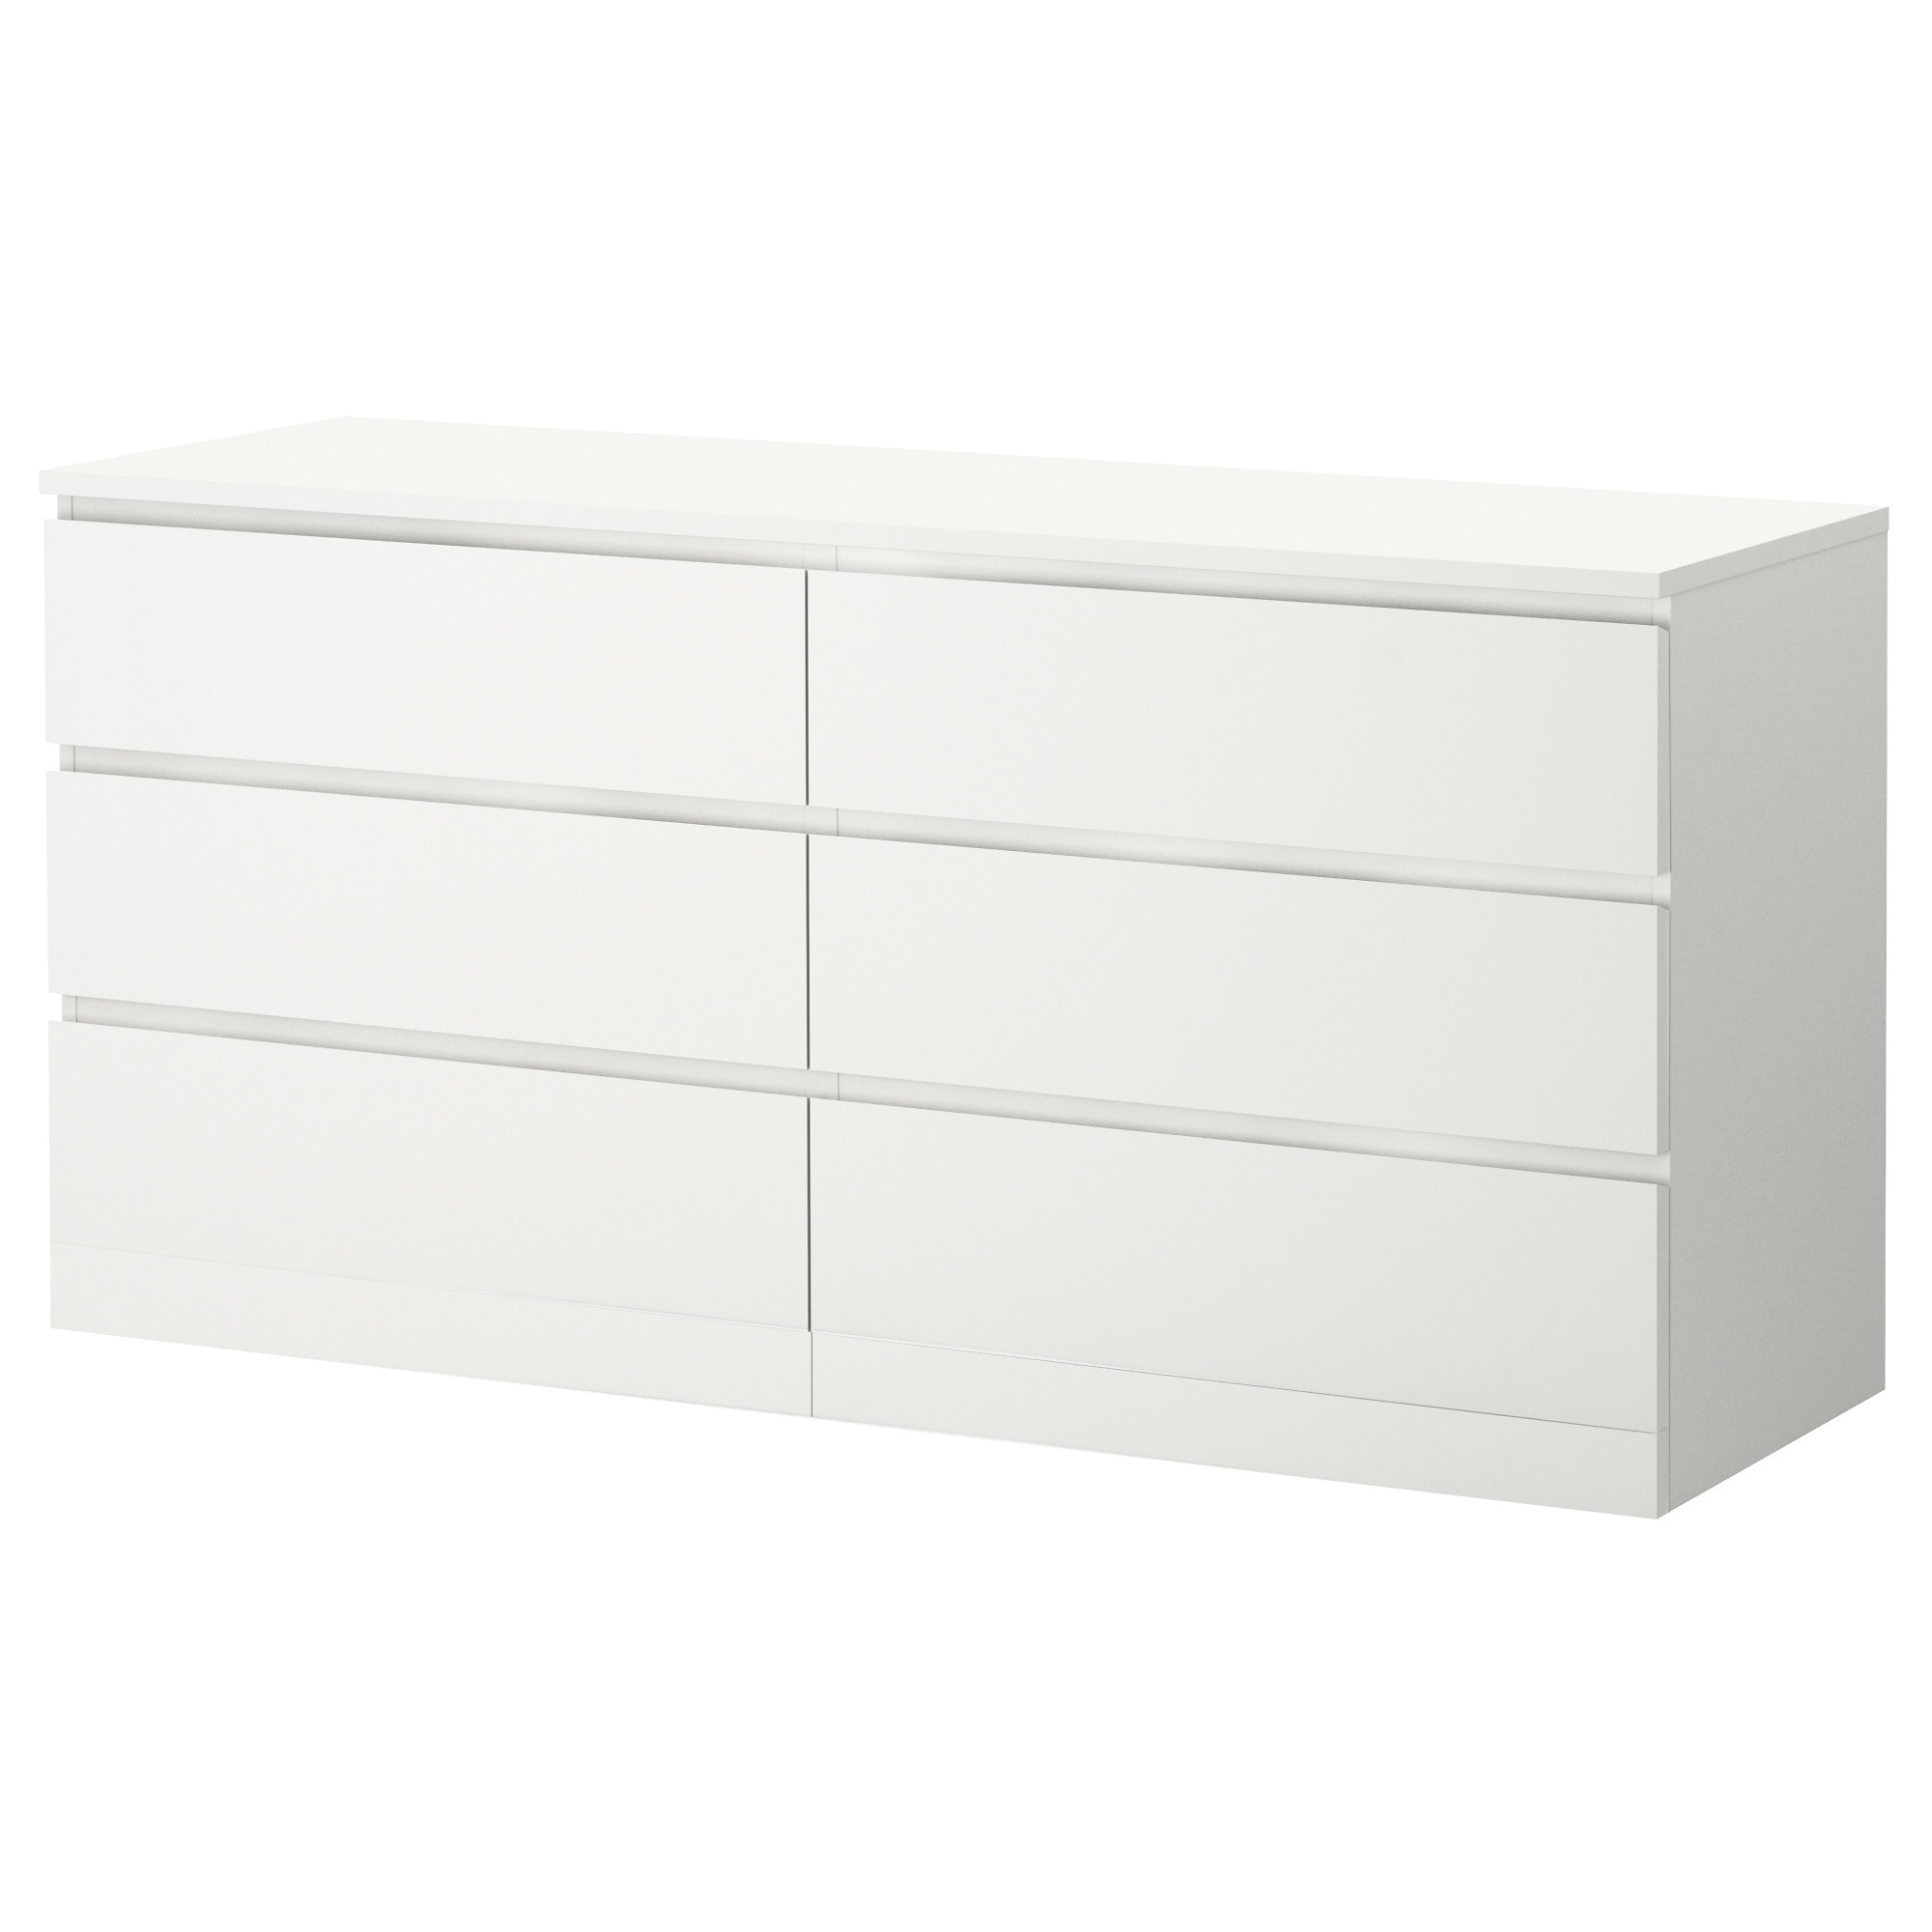 be ikea can room desk middle en collections placed of a in the white is malm because dresser gb back